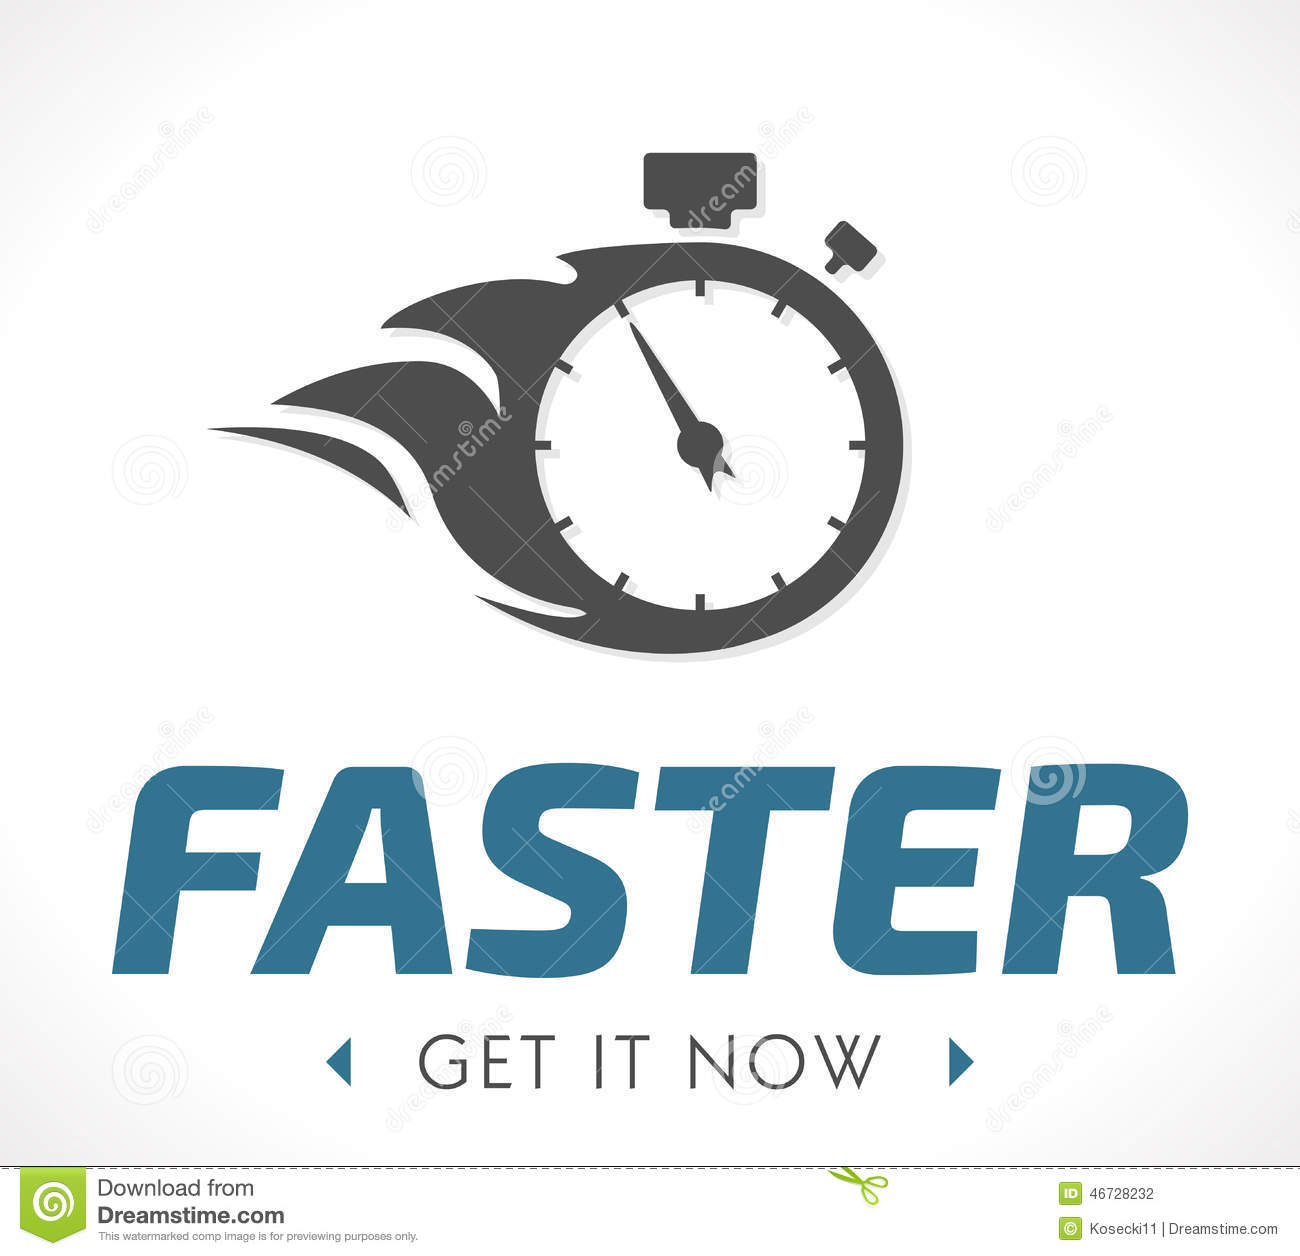 Faster Logo Stock Vector - Image: 46728232